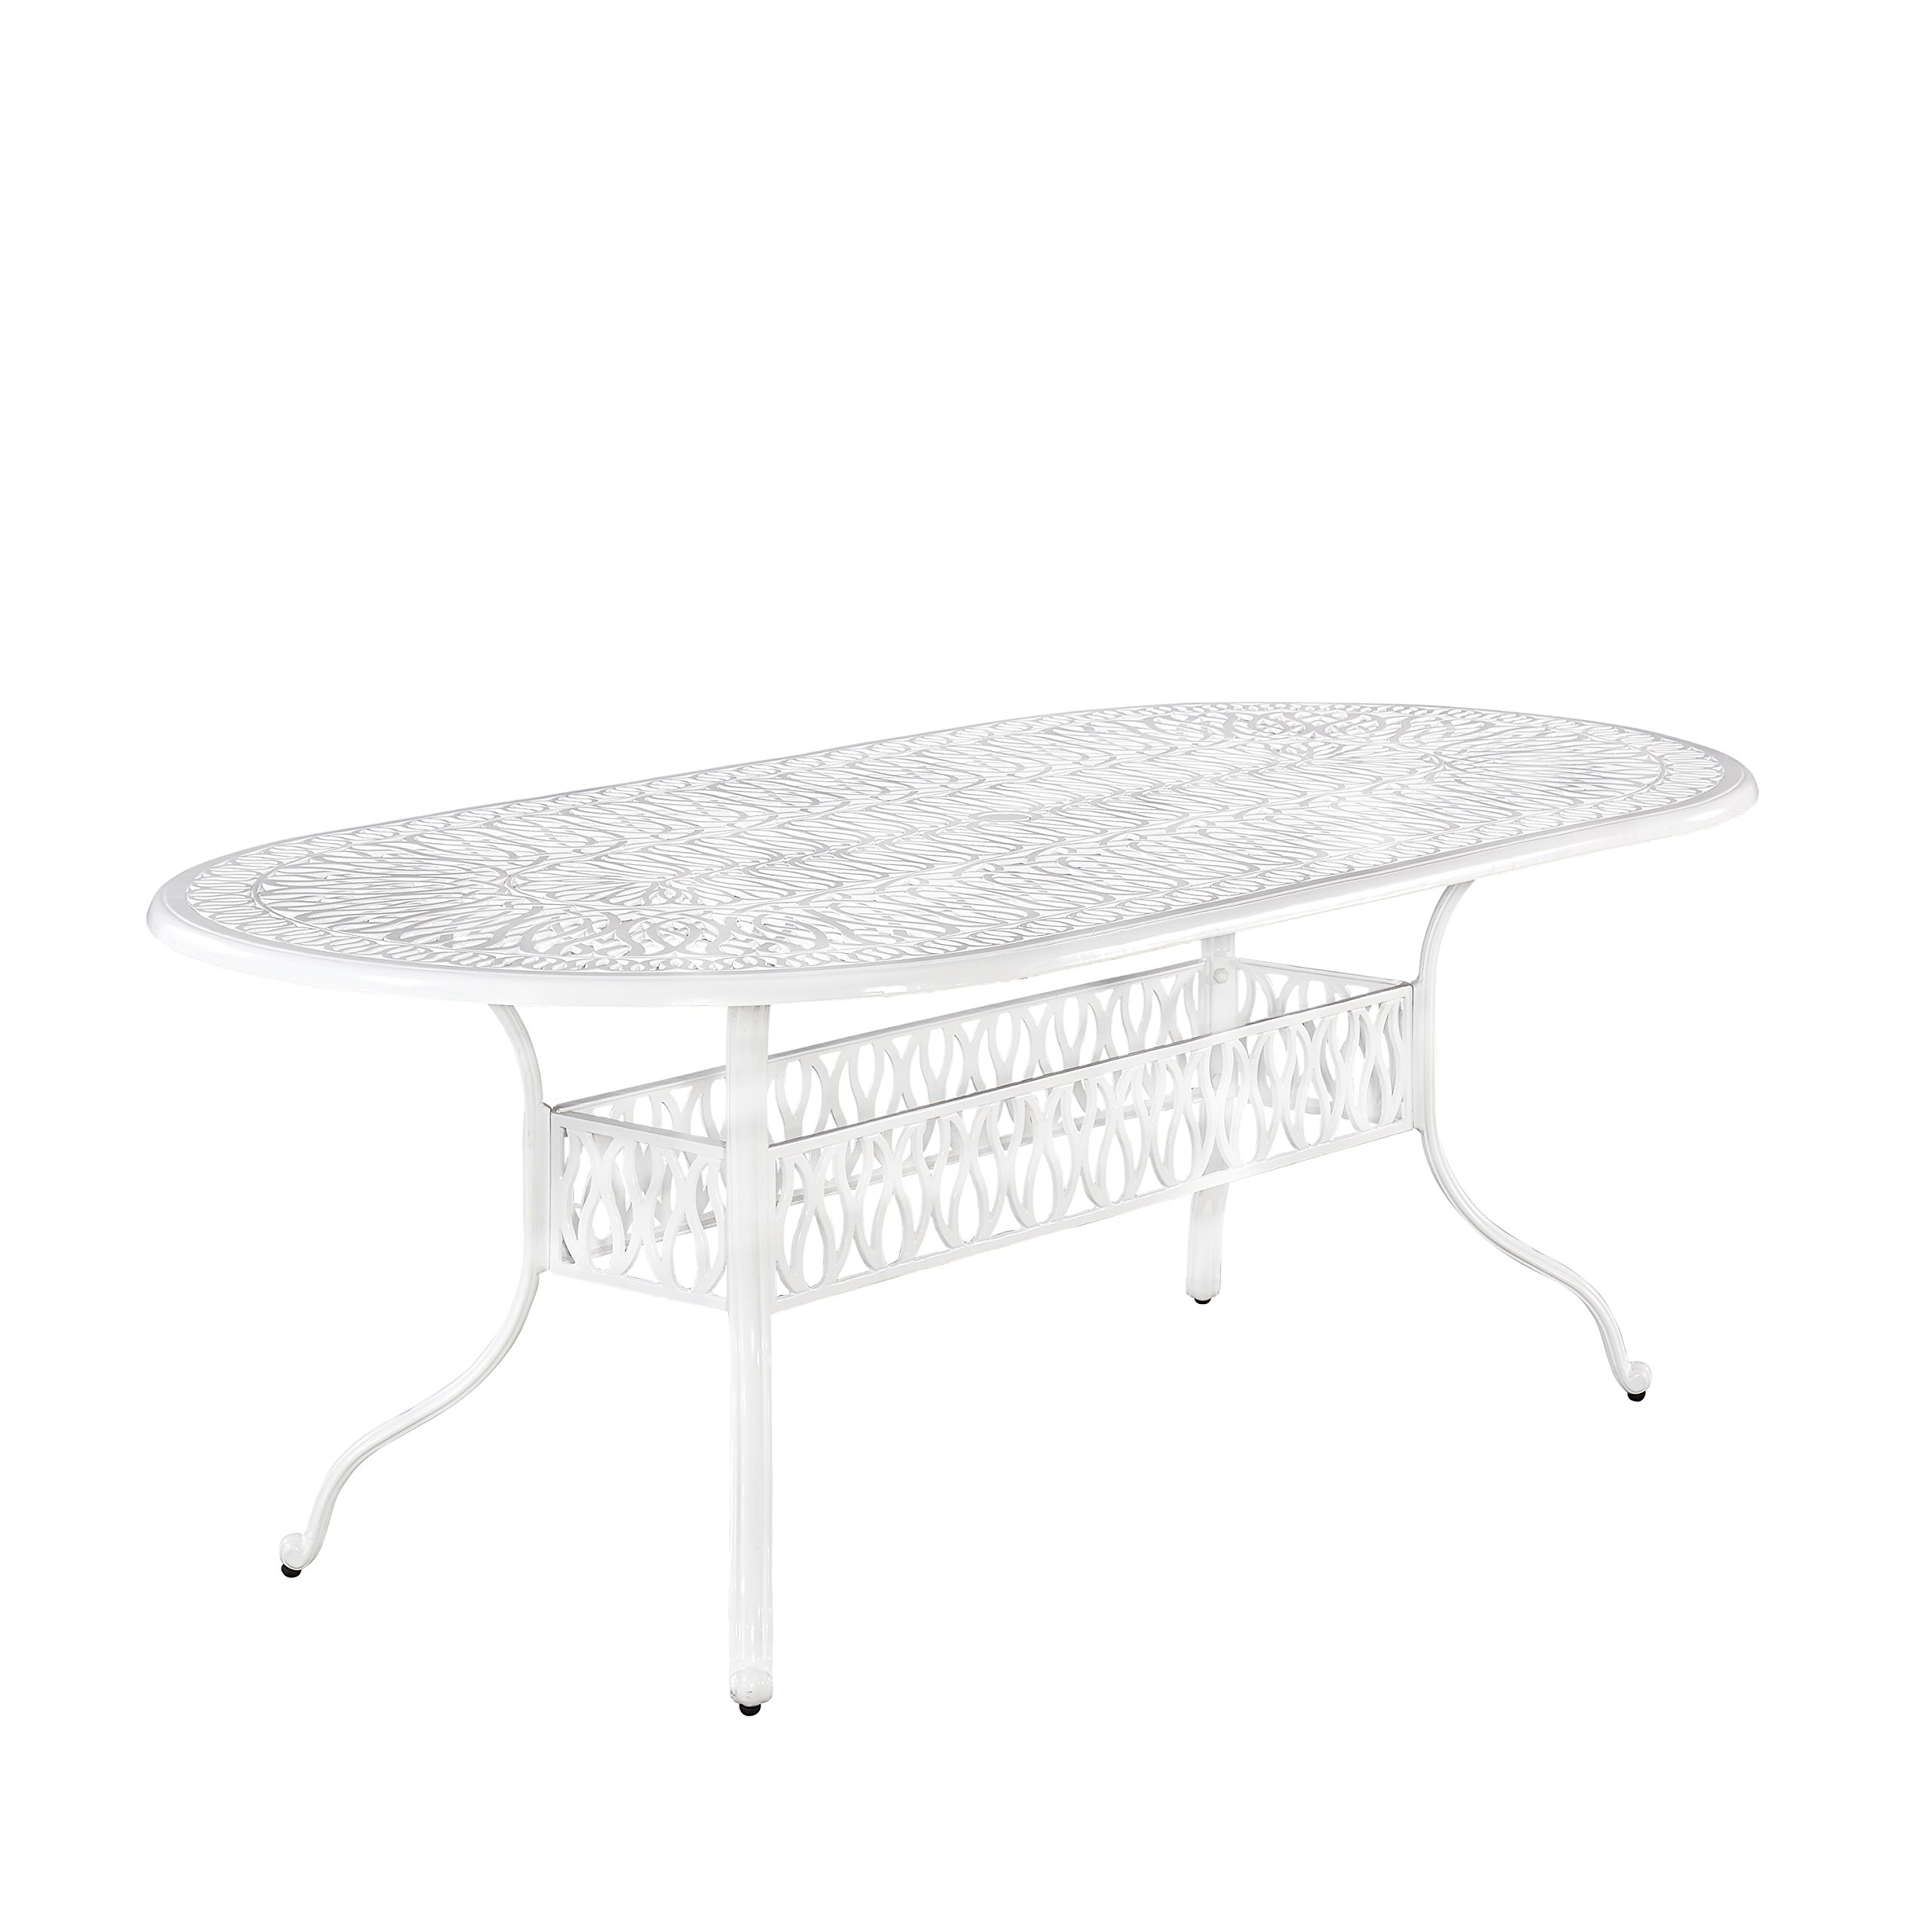 productlist outdoor home kuo product spider brown dining patio ft oval tables table stone grey loft mr kathy industrial